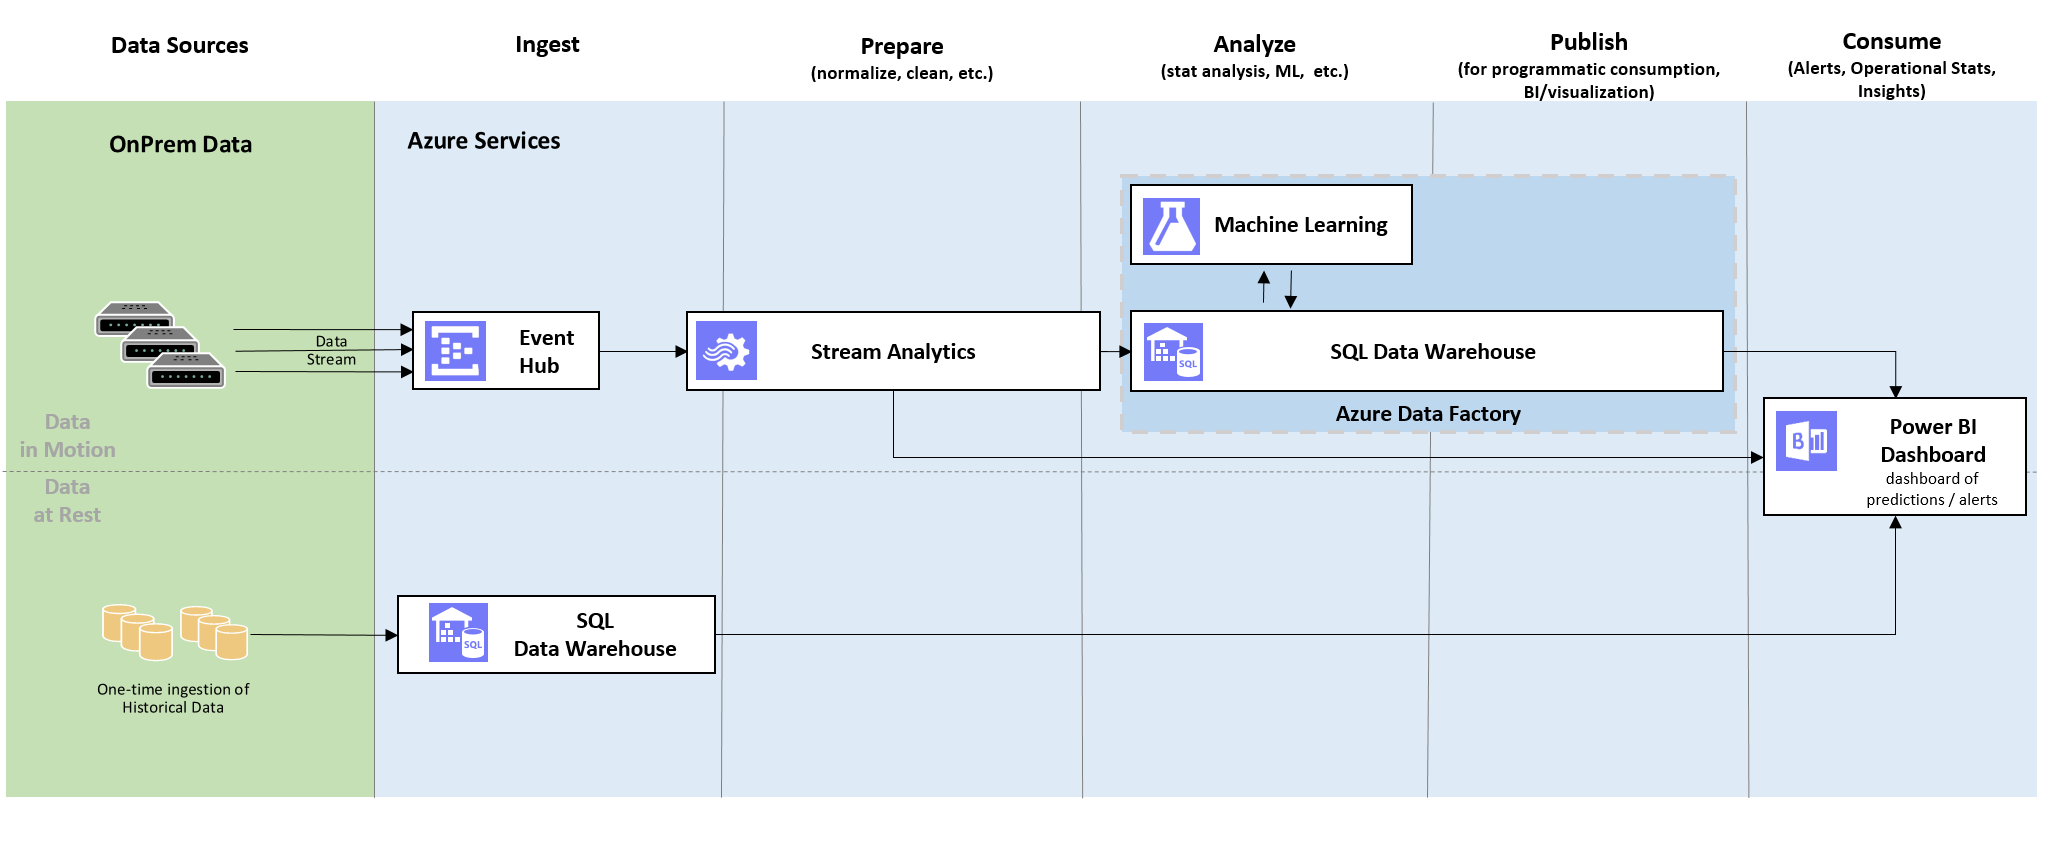 Oil and Gas Tank Level Forecasting   Azure AI Gallery